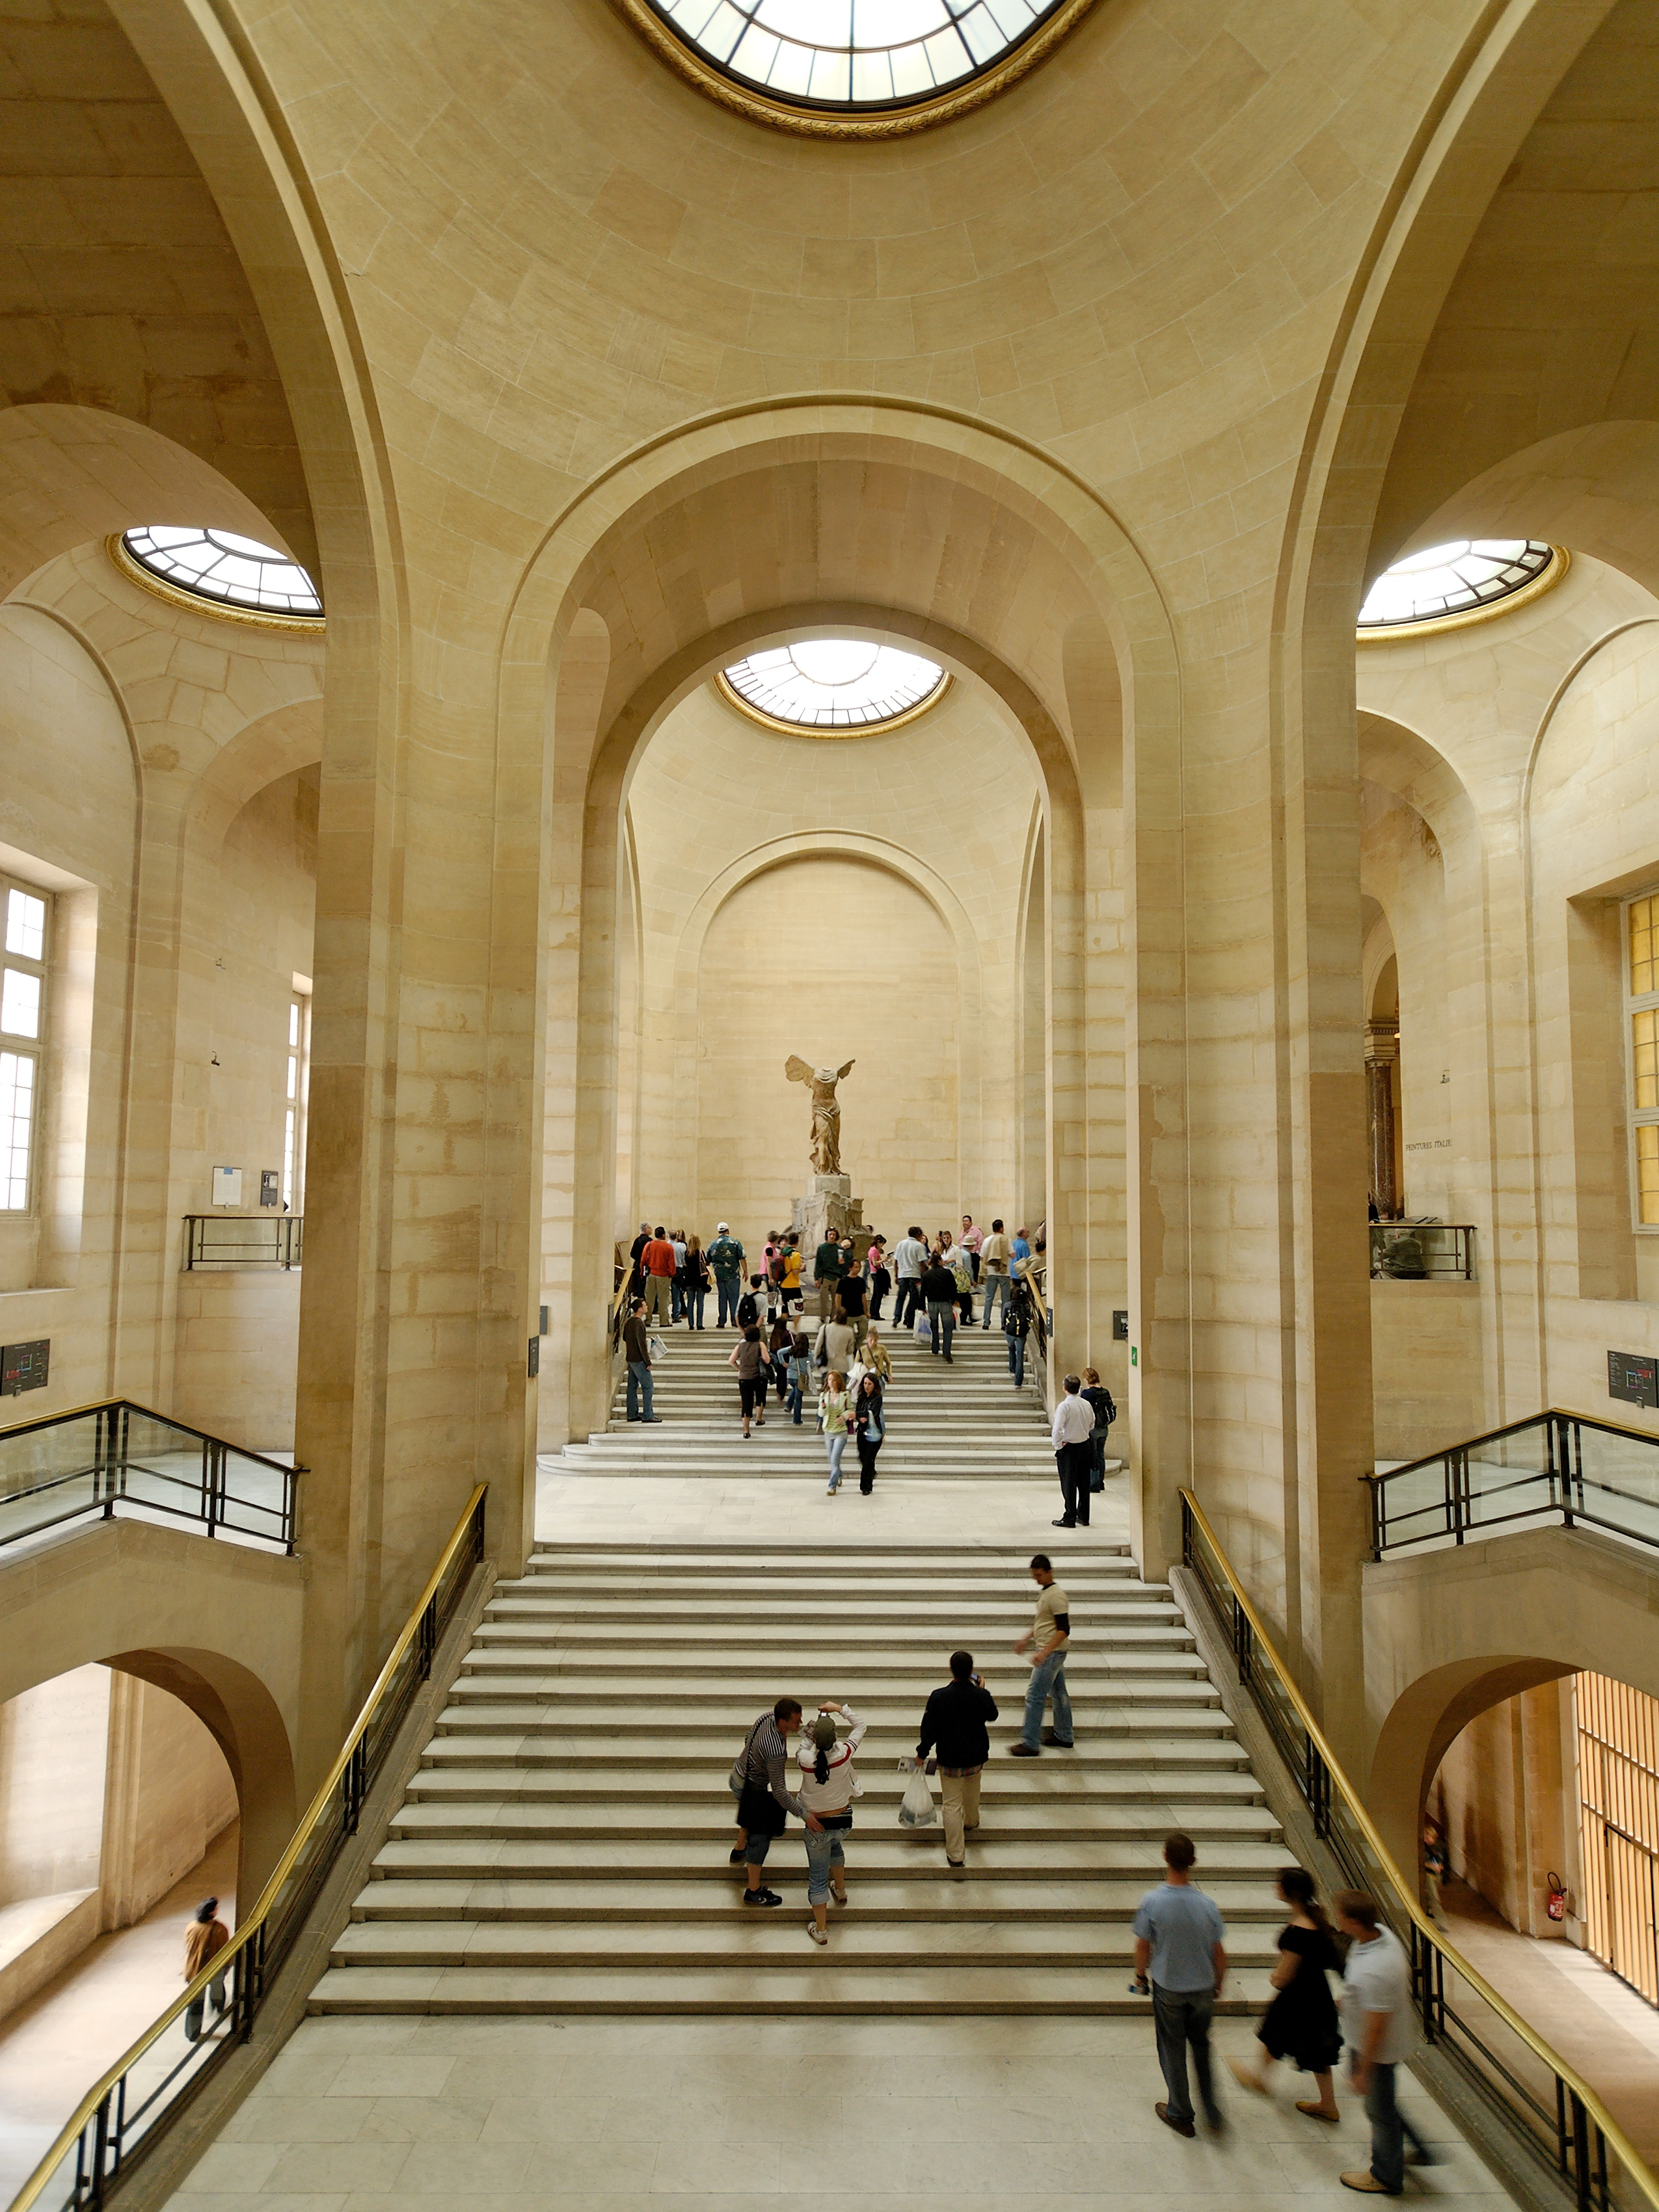 Top The Louvre Museum, Art History & Styles of Art - Art.com Wiki OI75